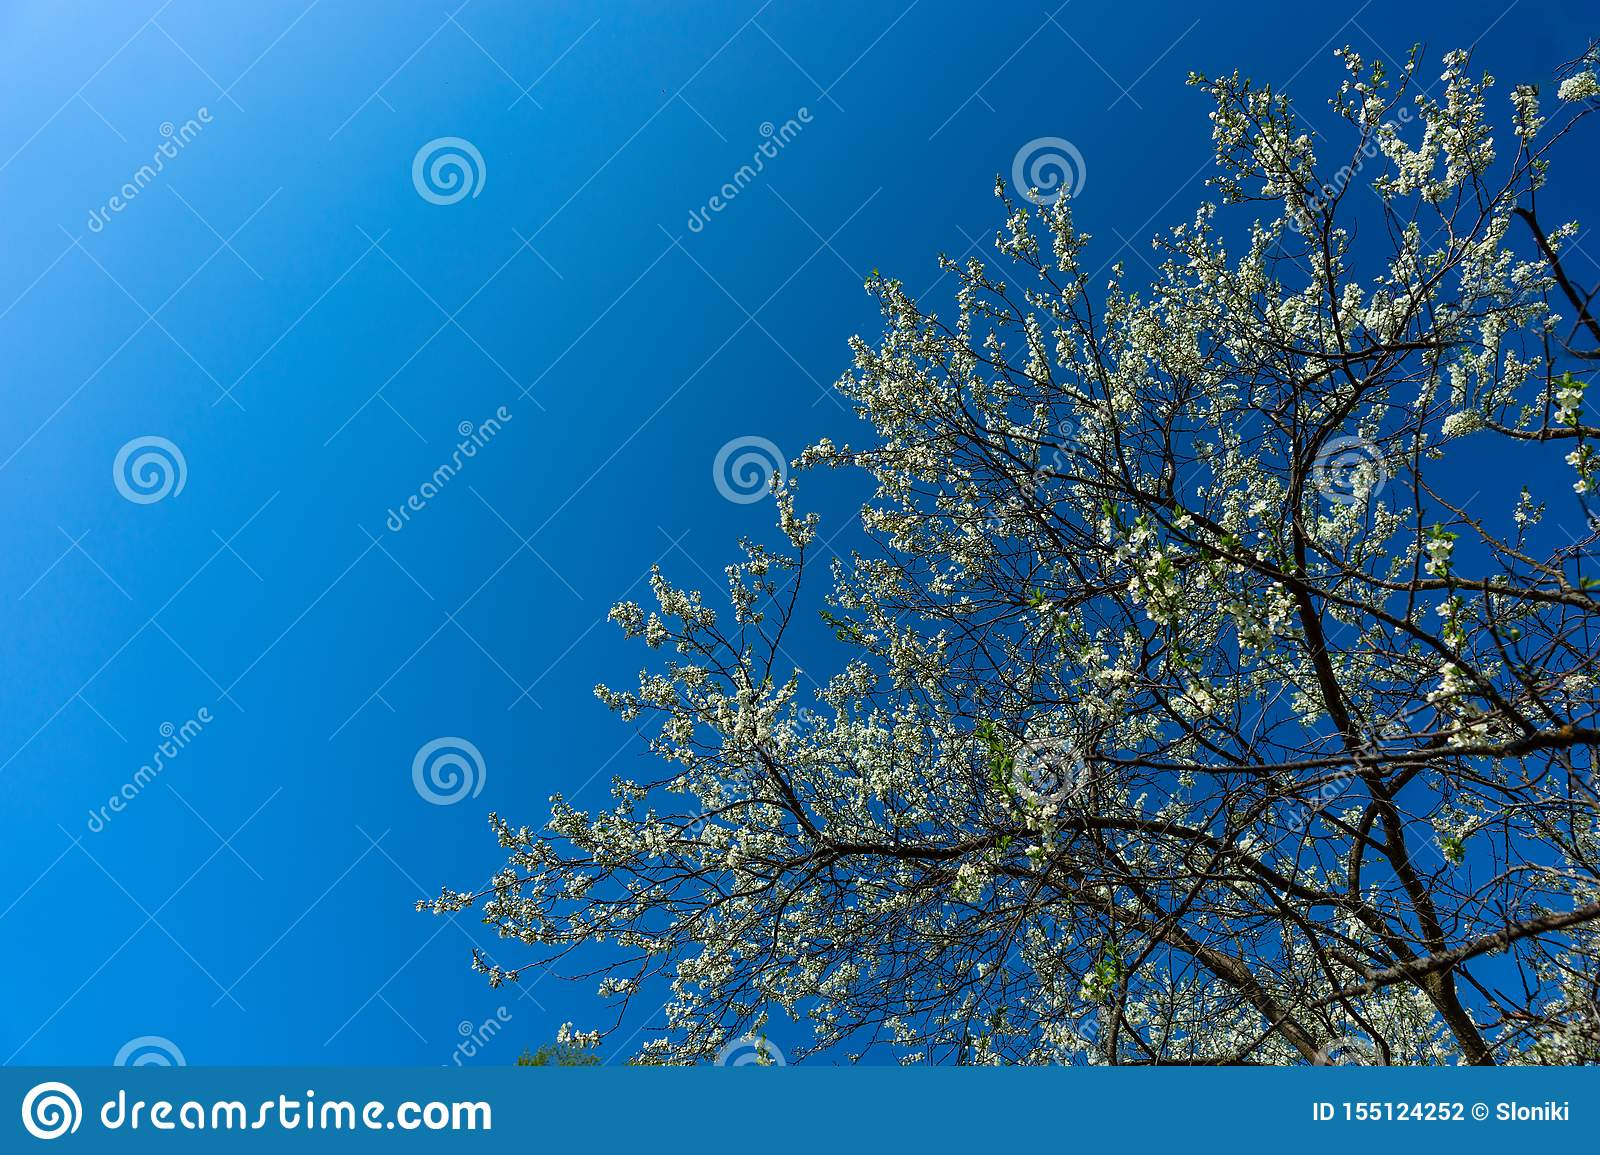 Beauty Of Nature Floral Desktop Background Blooming Closeup Tree